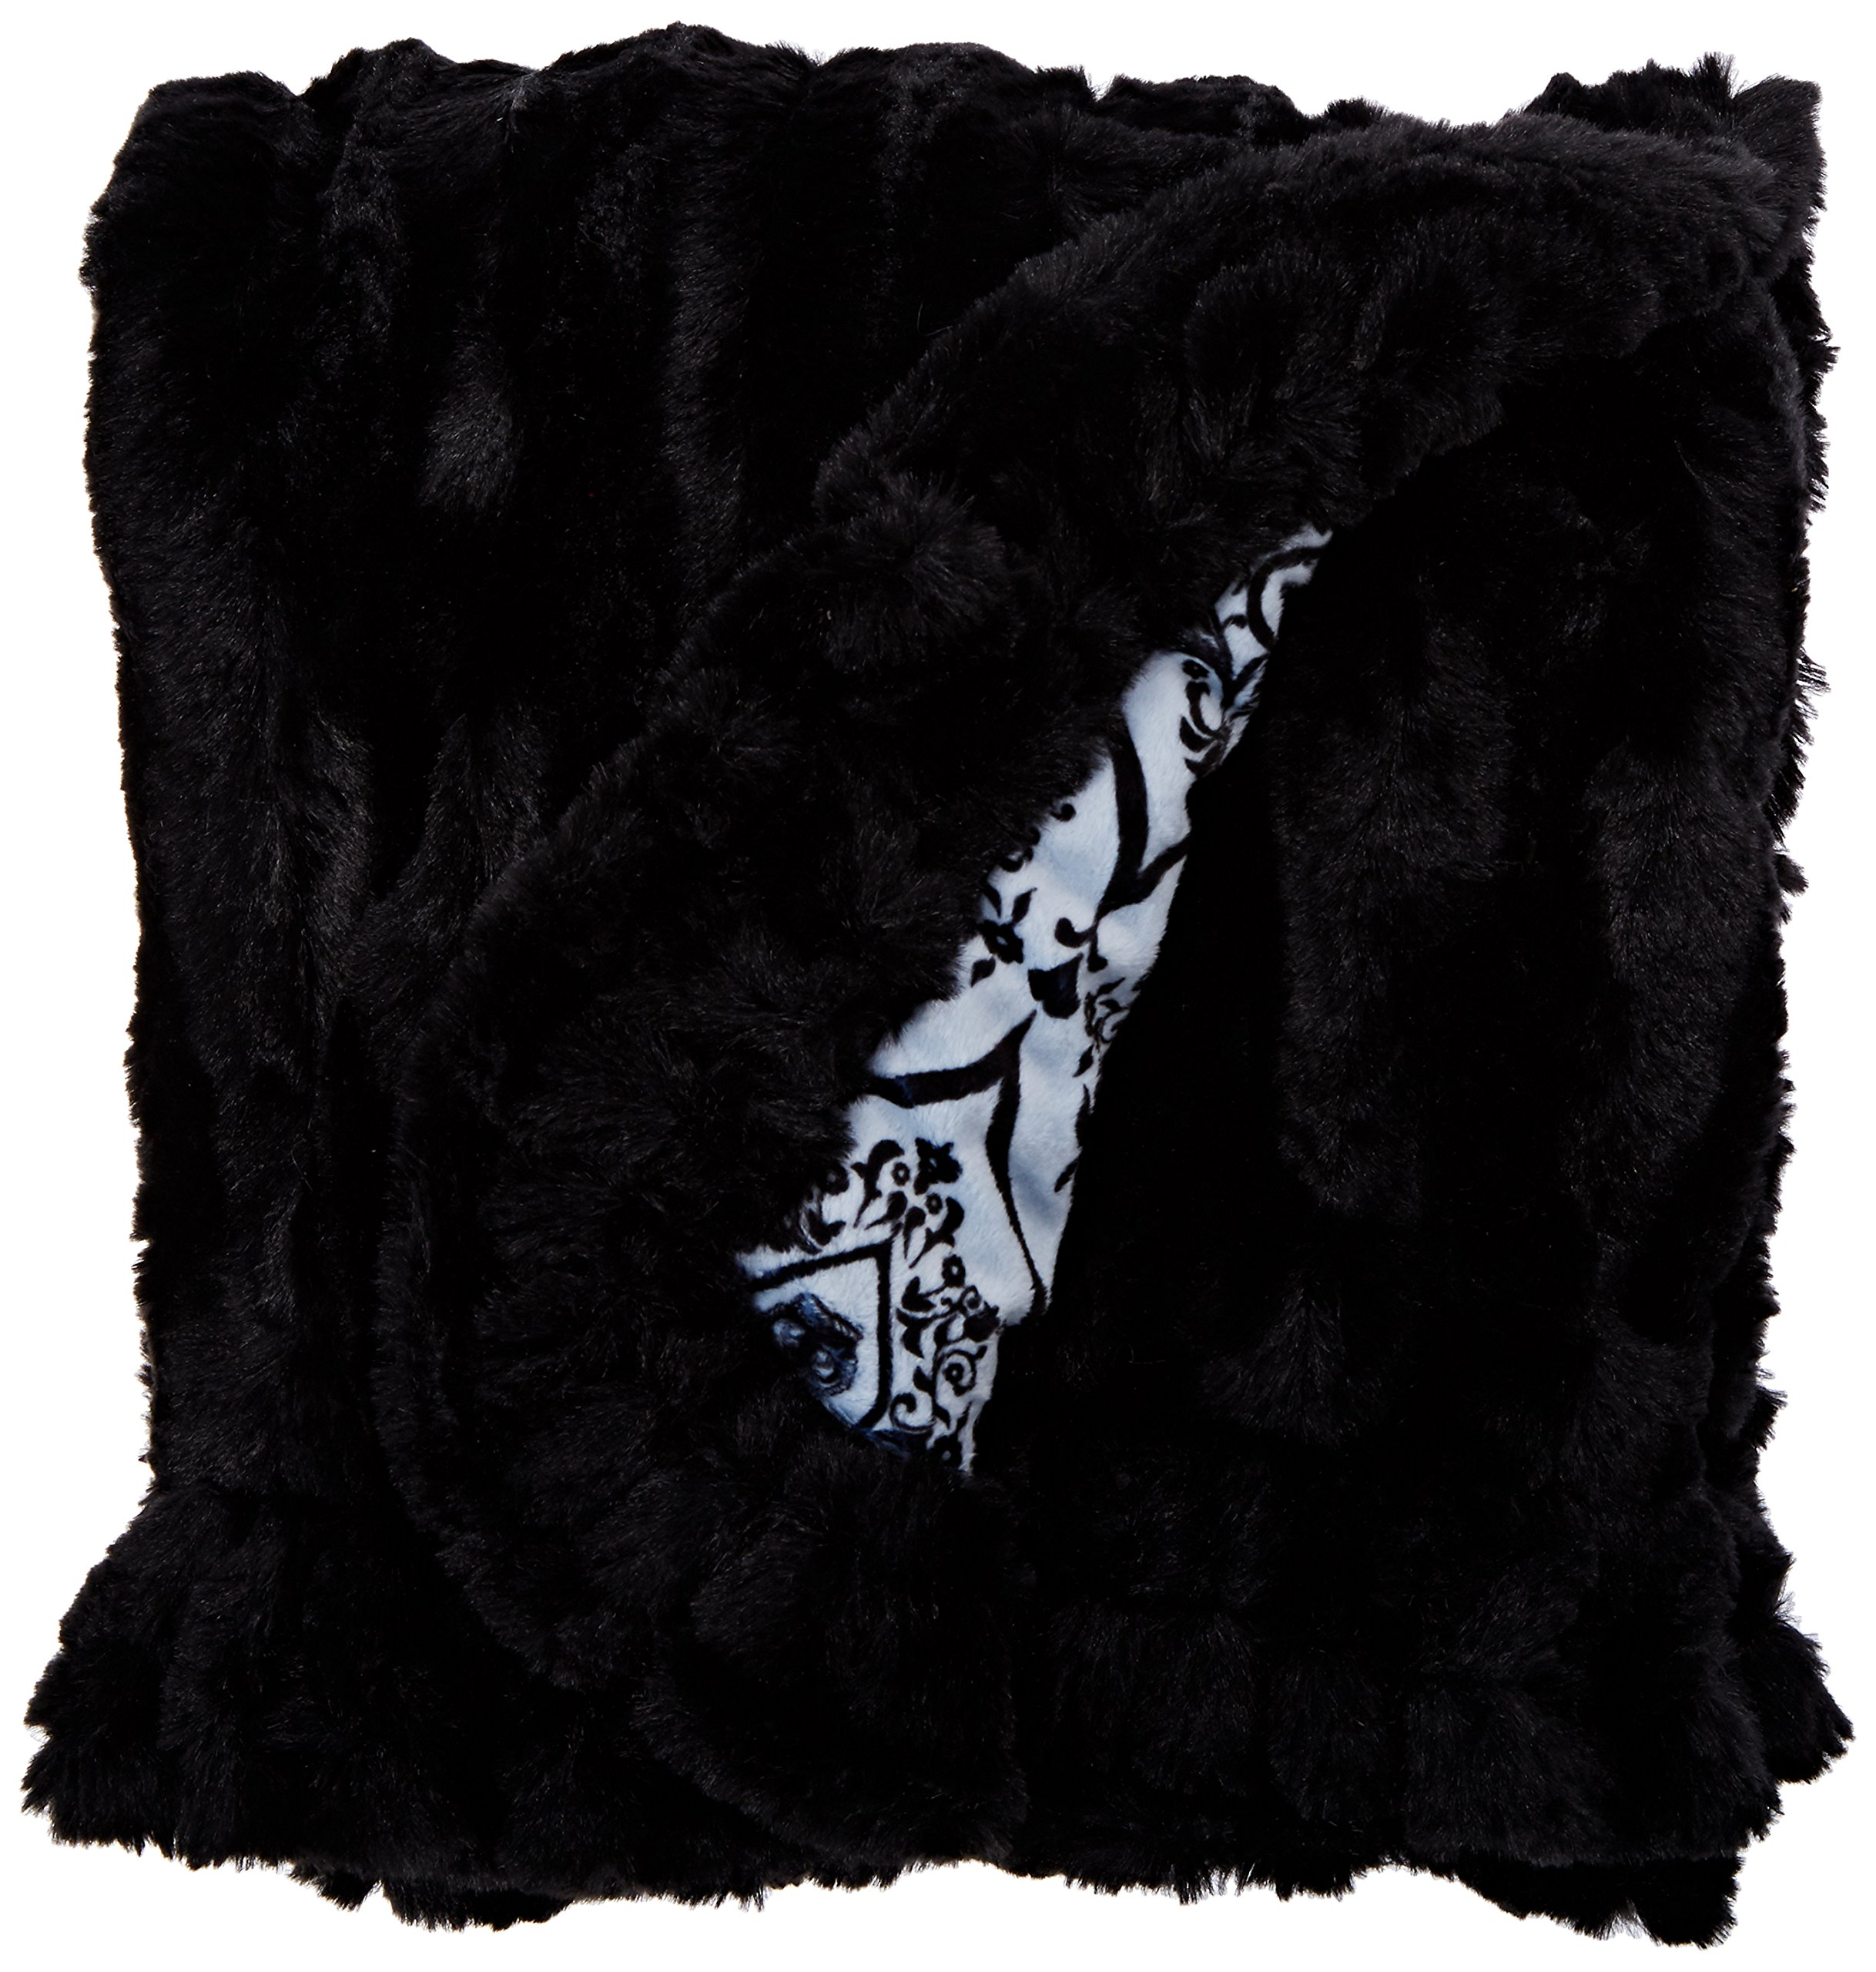 BESSIE AND BARNIE Versailles Blue/Black Puma Luxury Ultra Plush Faux Fur Pet, Dog, Cat, Puppy Super Soft Reversible Blanket (Multiple Sizes) by BESSIE AND BARNIE (Image #1)